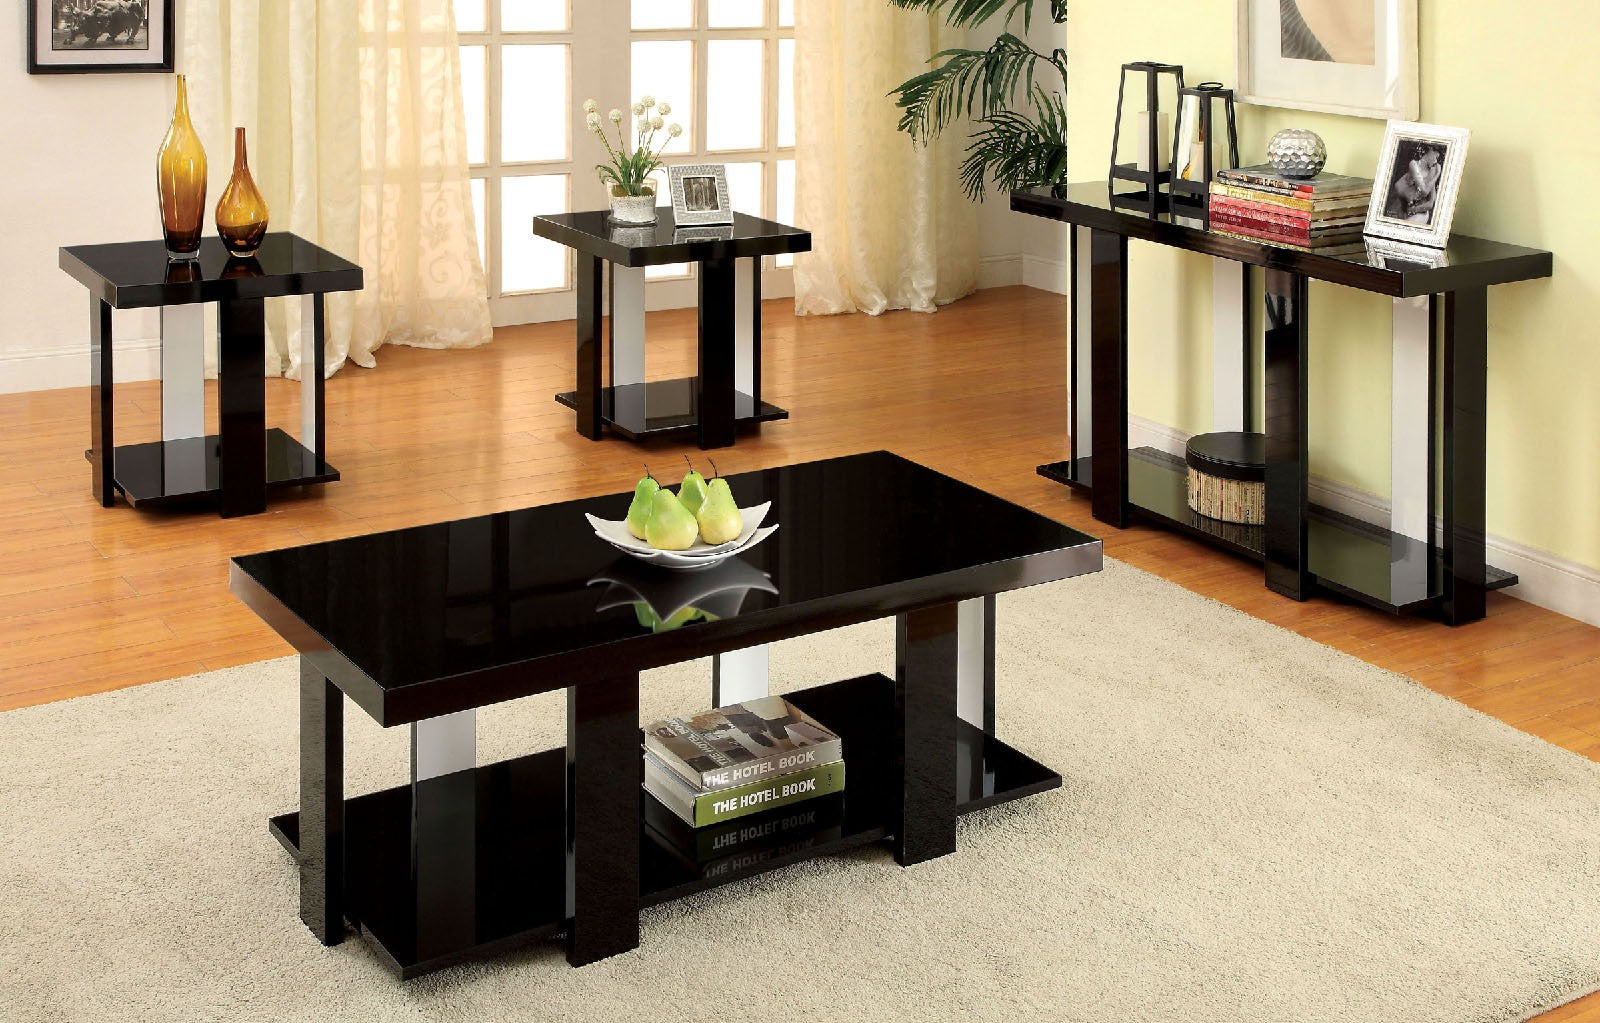 LAKOTI I 3 PC. TABLE SET     |     CM4240-3PK